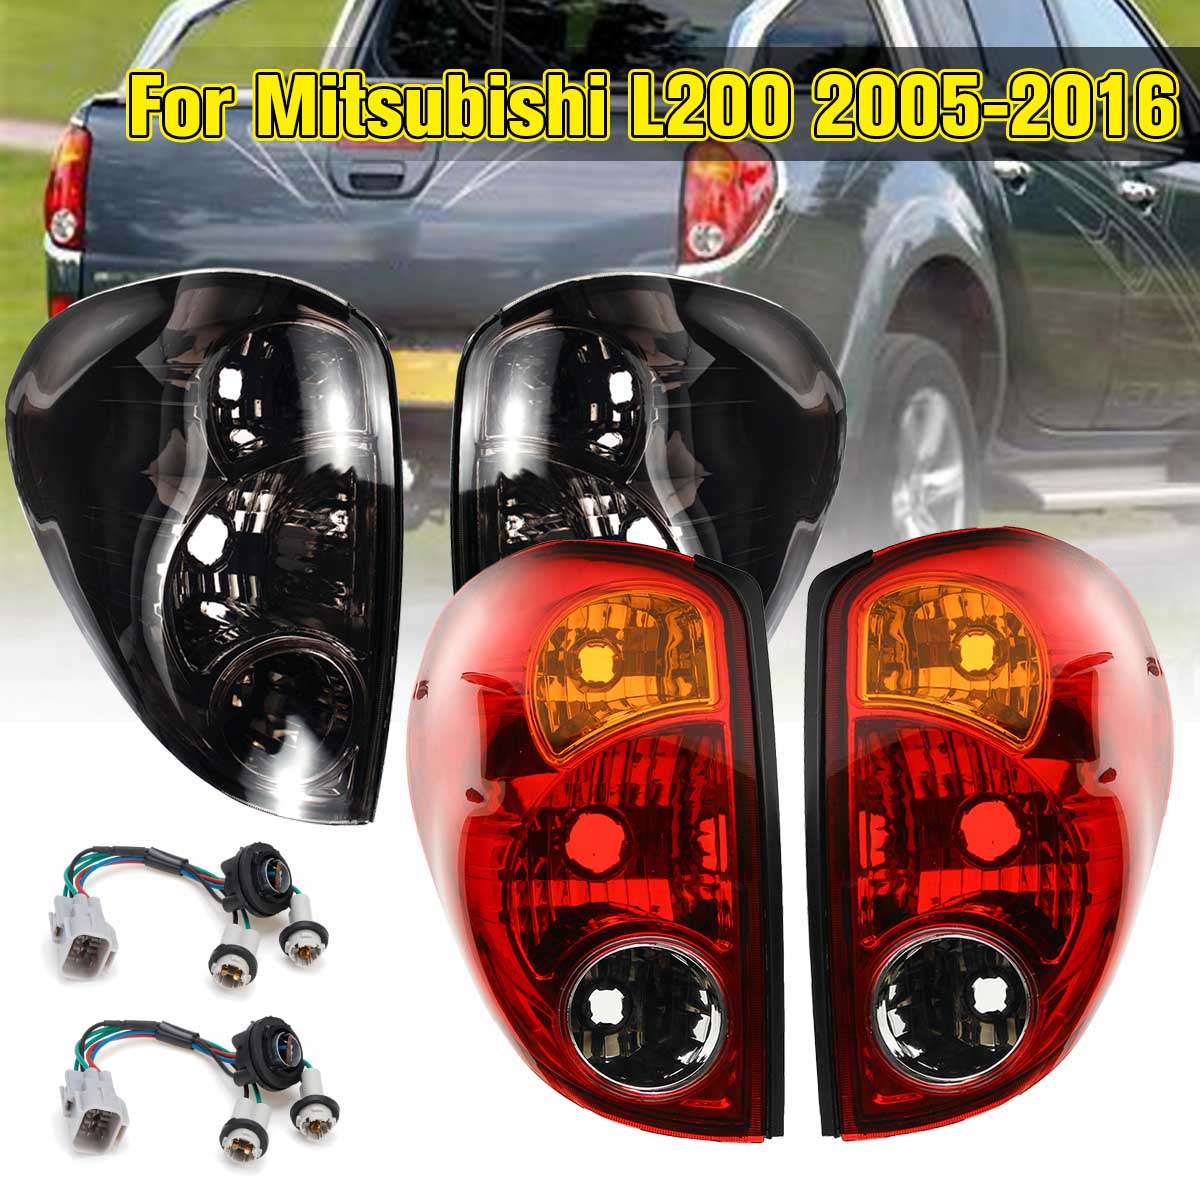 Car Taillights For Mitsubishi L200 Triton Colt 2005-2016 Pickup 1 Pair Rear Lamp Tail Lights Brake With Wire Replacement Smoke